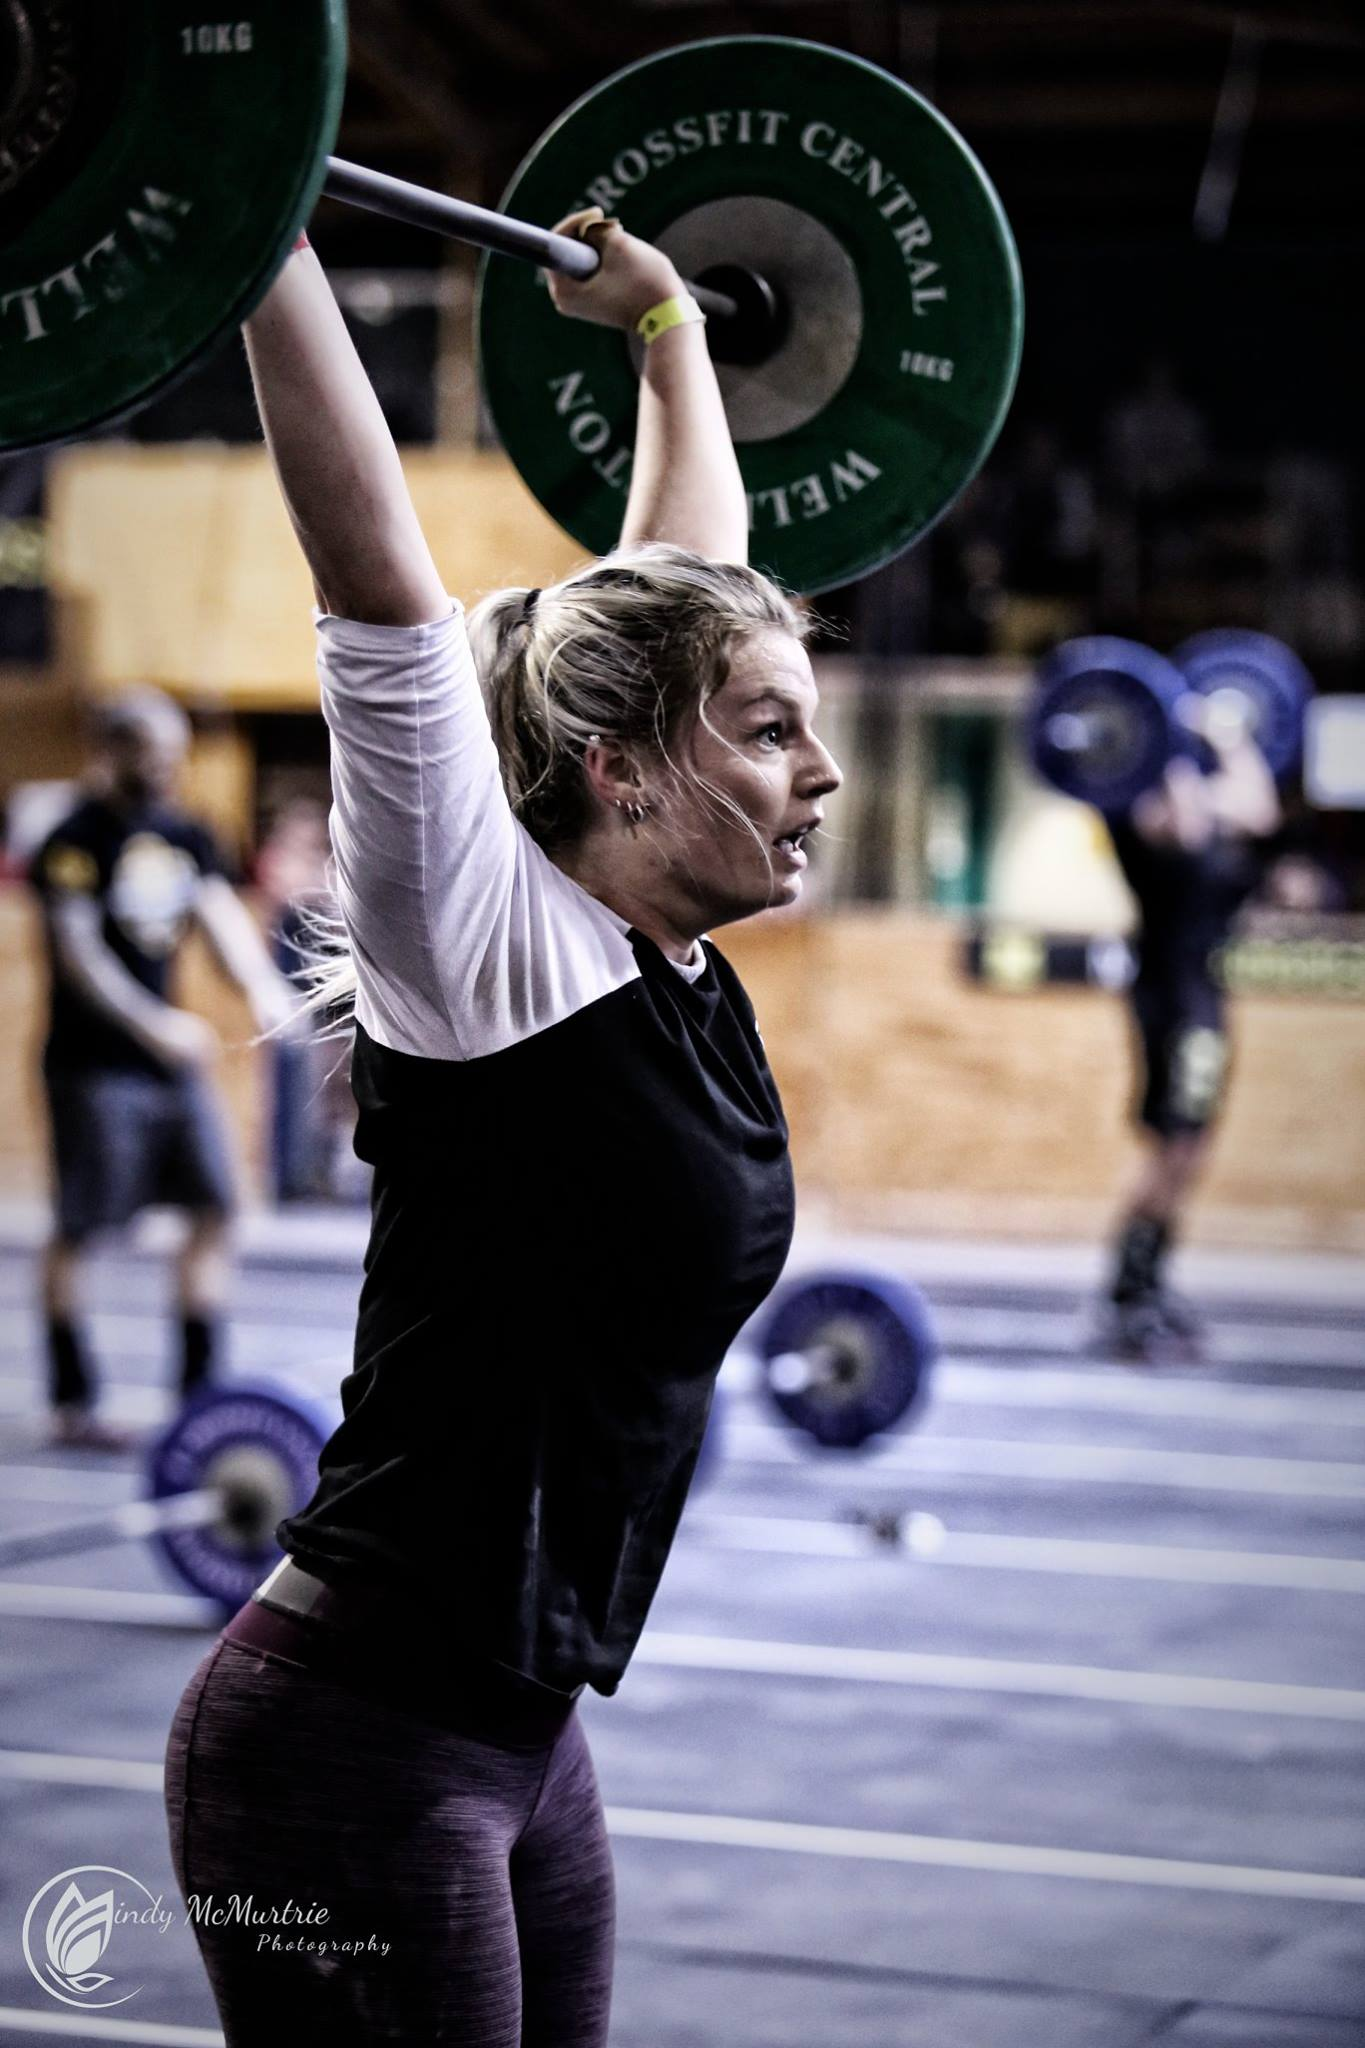 Emma - Goals:Learn what to eat for performanceMake weight for NZ Weightlifting NationalsLose body fat